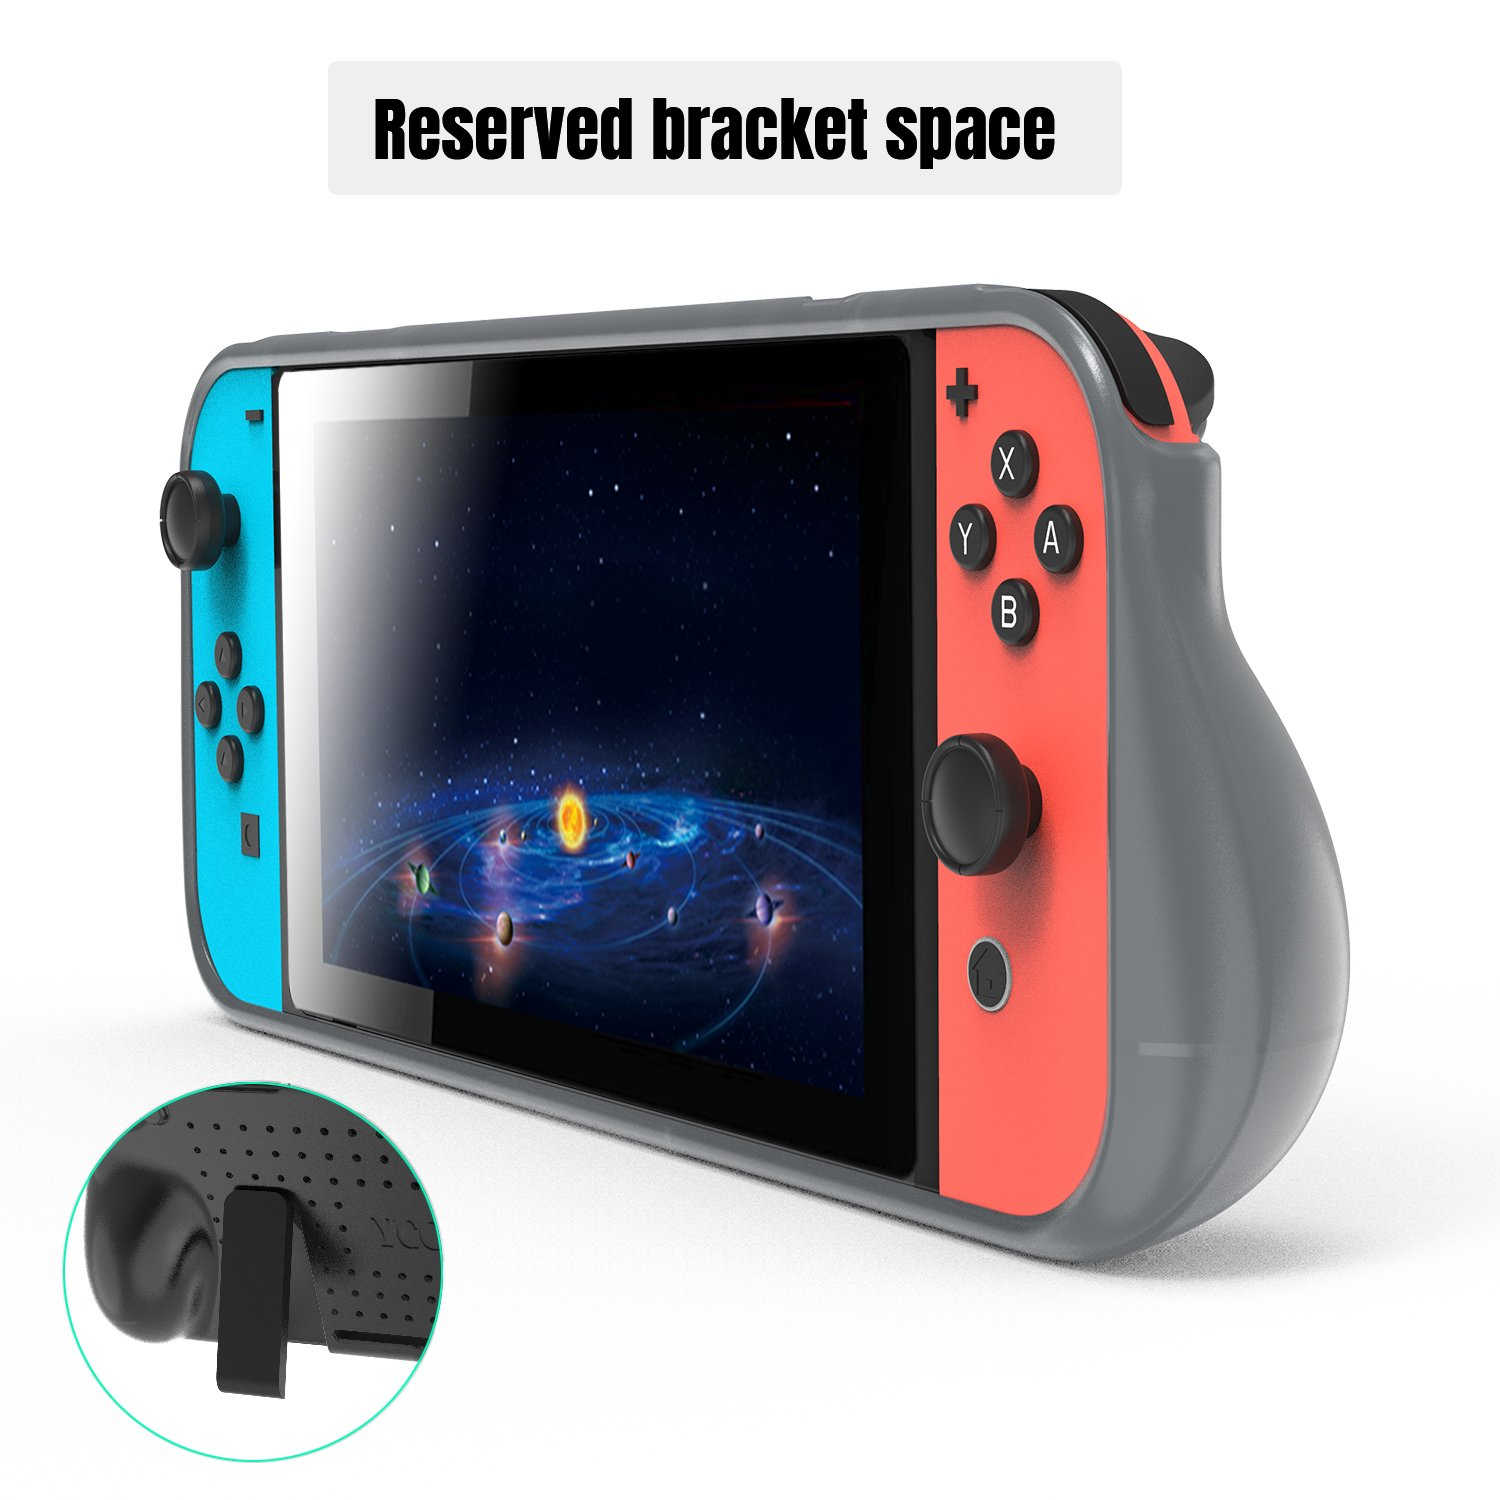 Protective Case for Nintendo Switch, Grip Cover with Shock Absorption and Anti-Scratch Design - Comfortable TPU Case for Nintendo Switch Console (Grey)